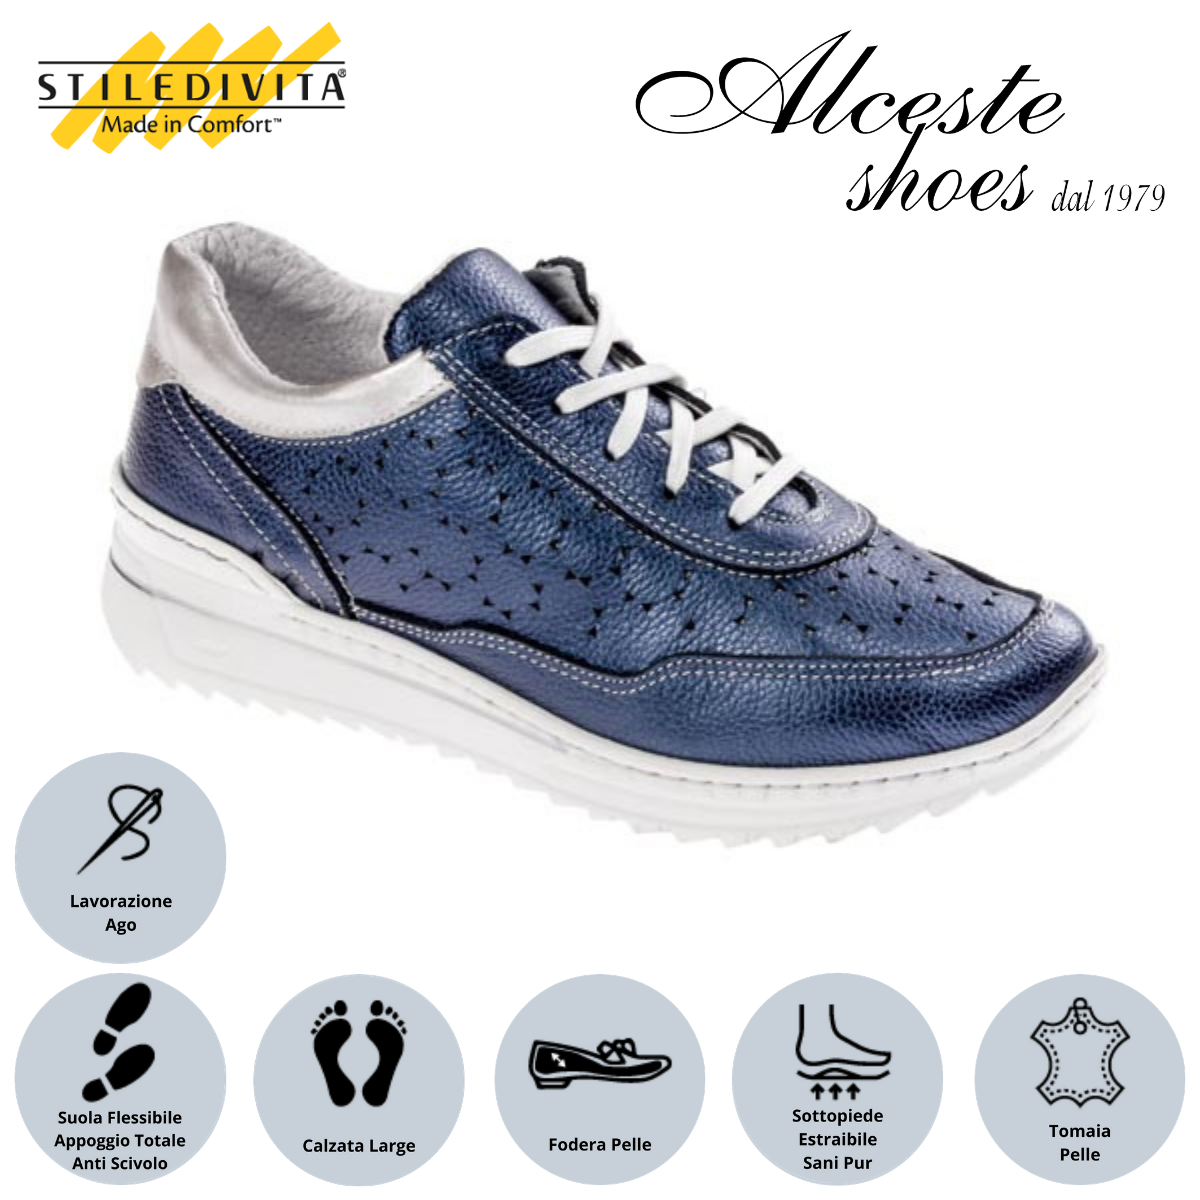 Sneakers Traforate Stiledivita Art. 7442 Pelle Blu e Argento Alceste Shoes 22